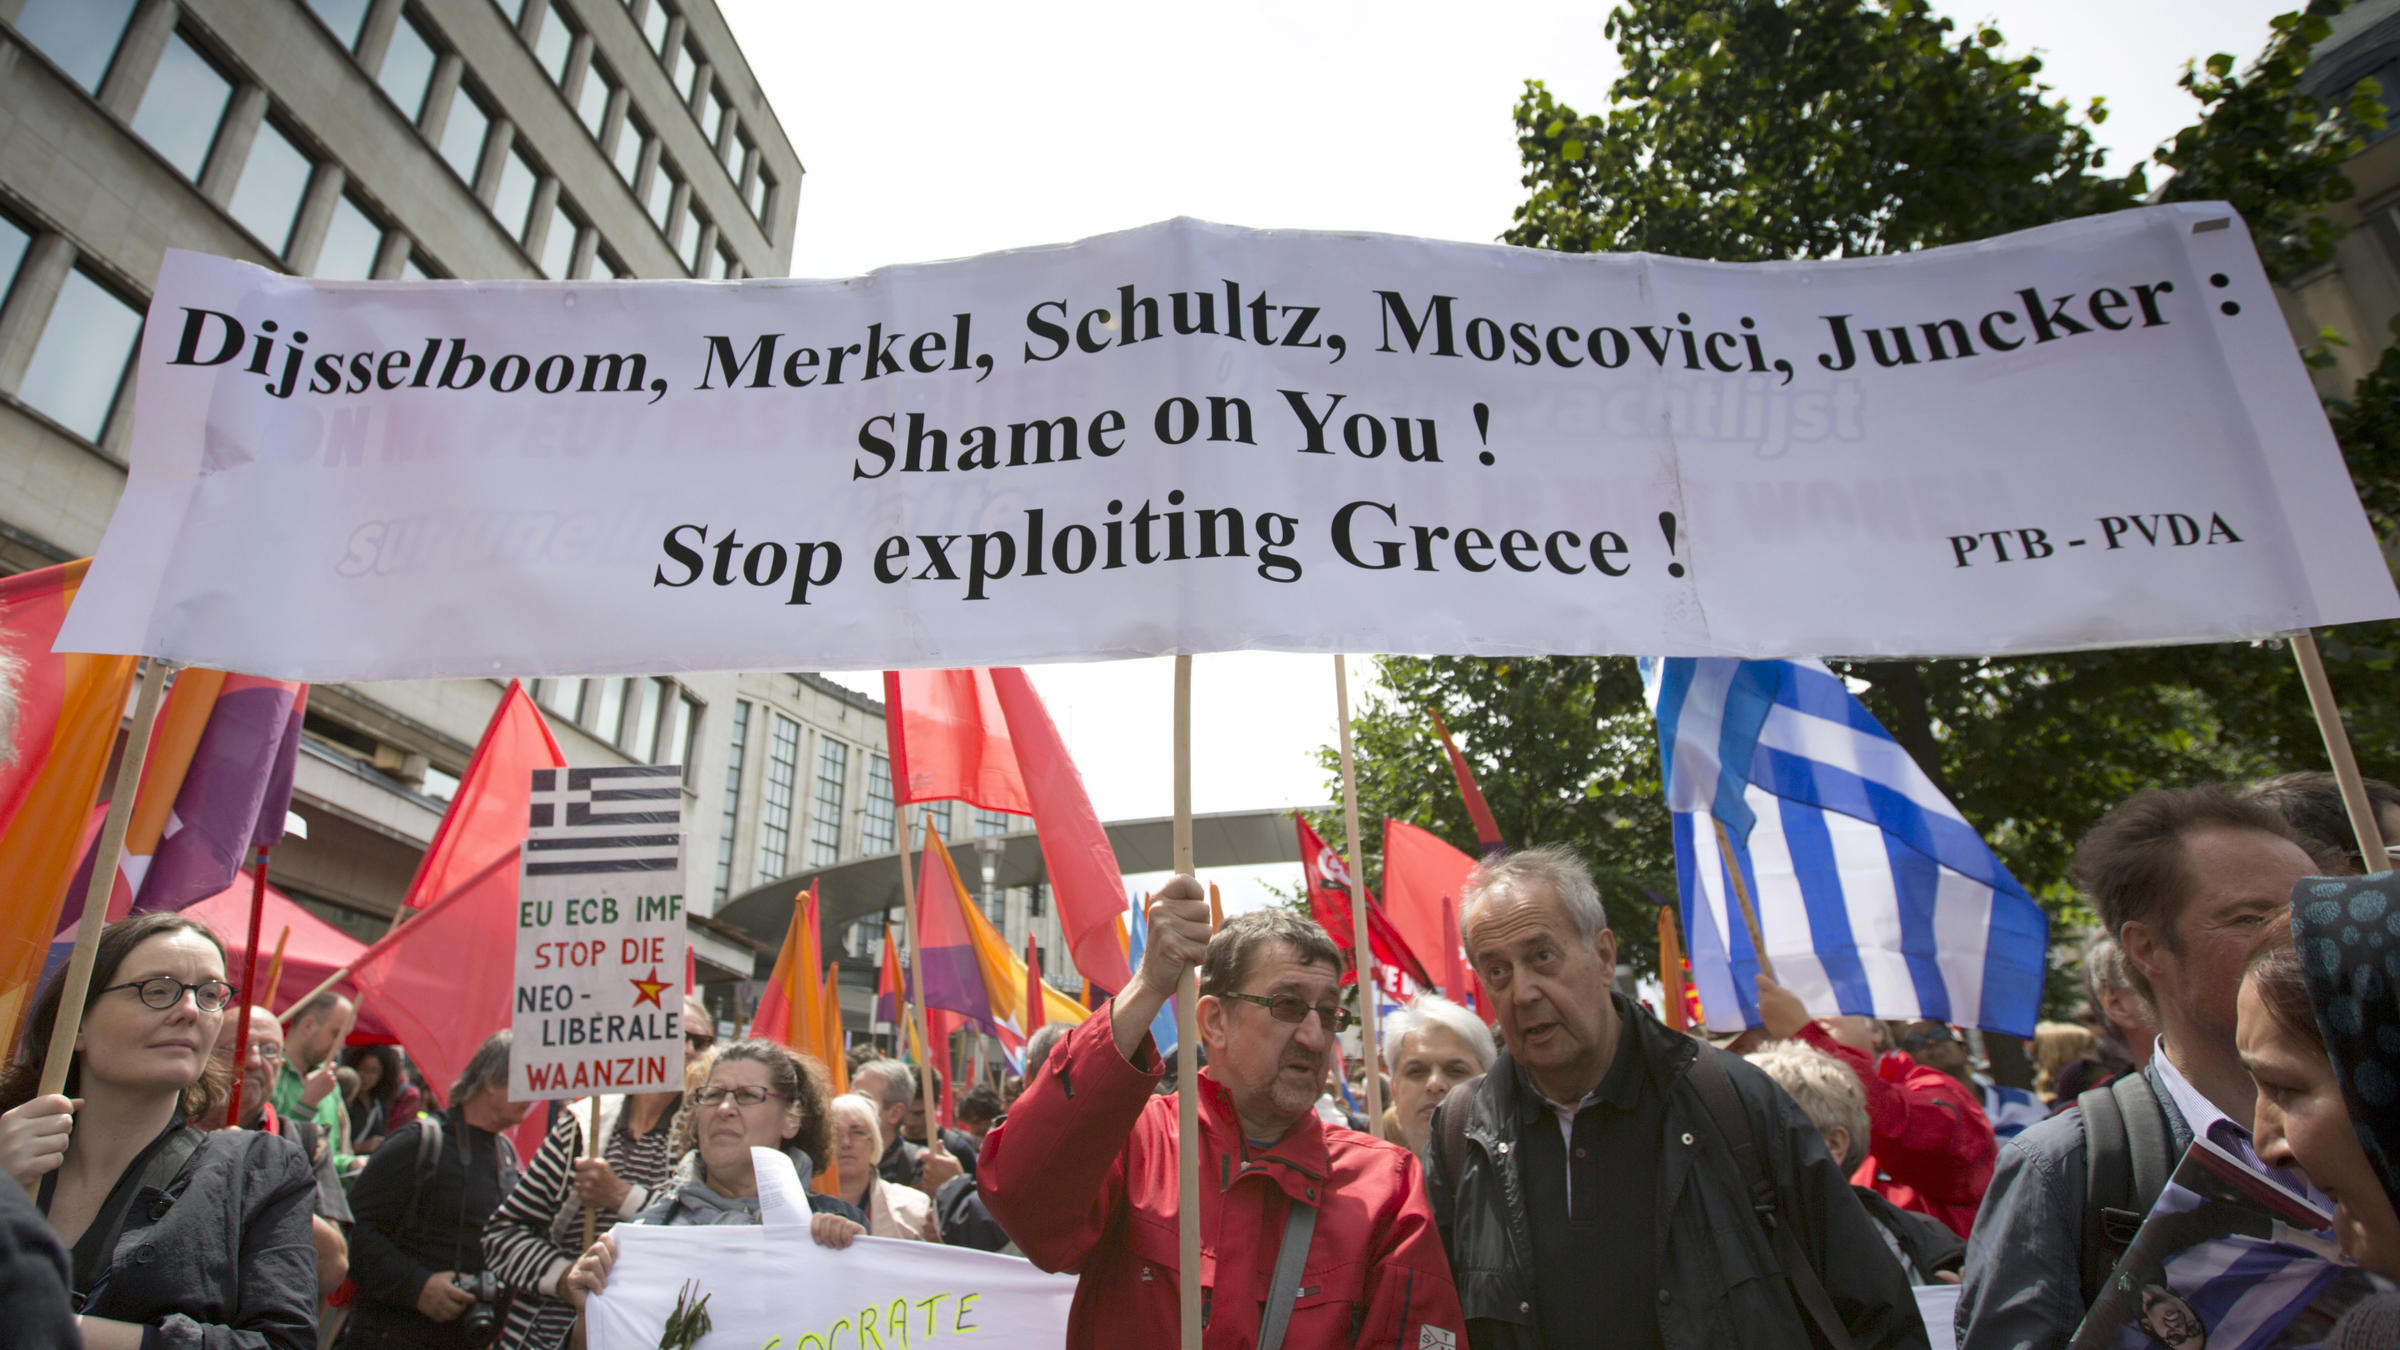 imf and greece On that day, greece ended its esm programme - after eight years of receiving loans from the esm, efsf, imf, and euro area countries together, the efsf and esm disbursed €204 billion to greece, and now hold more than half of its public debt.